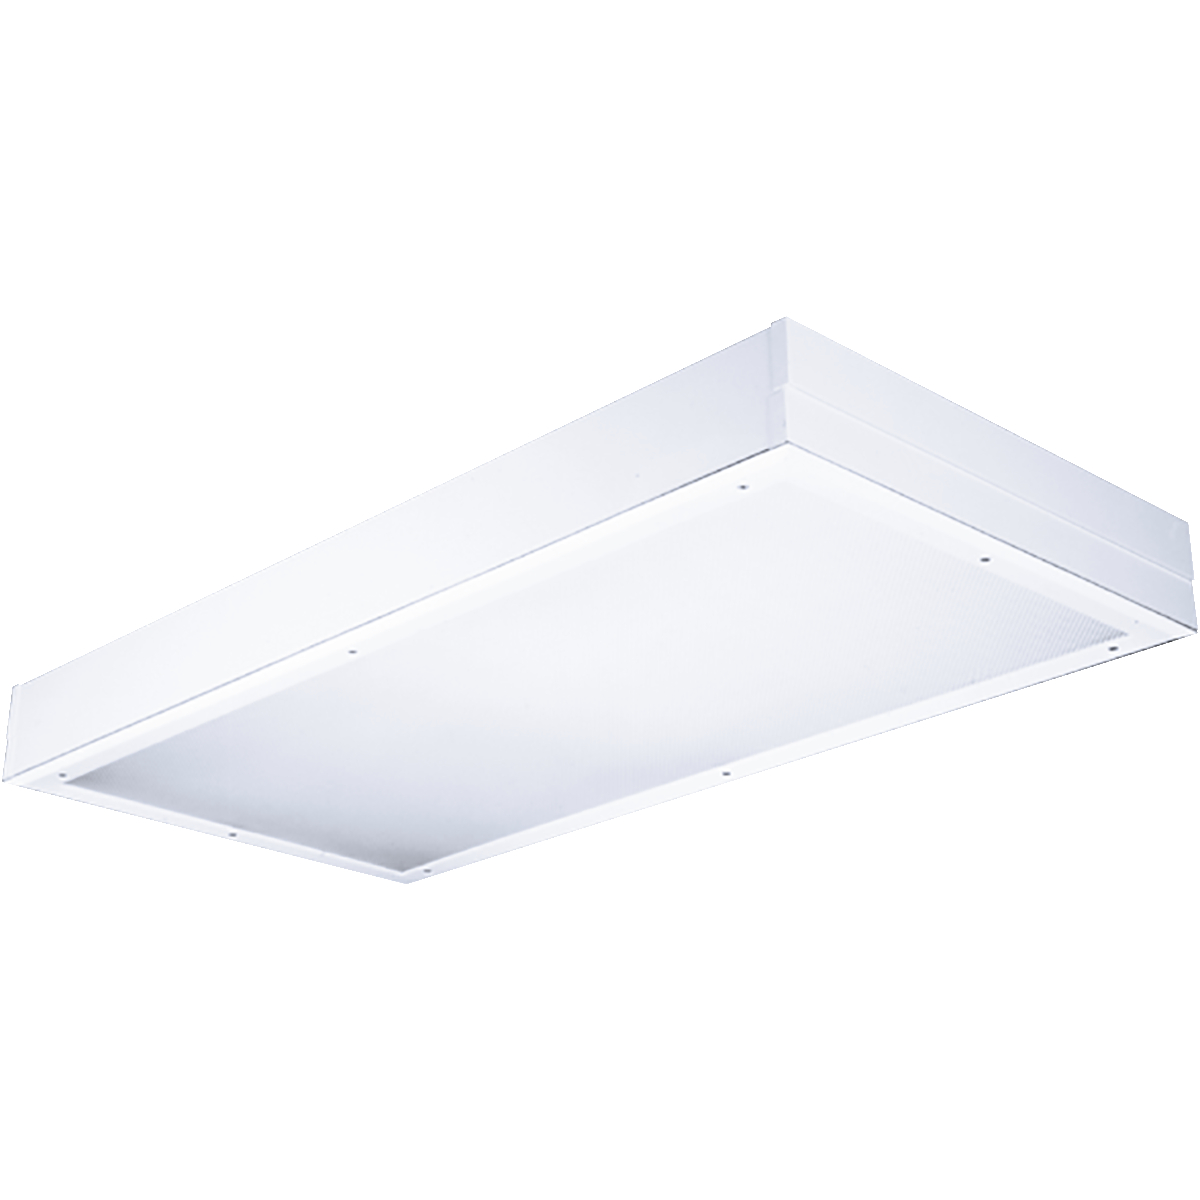 Recessed linear troffers commercial indoor lighting lighting crc arubaitofo Choice Image